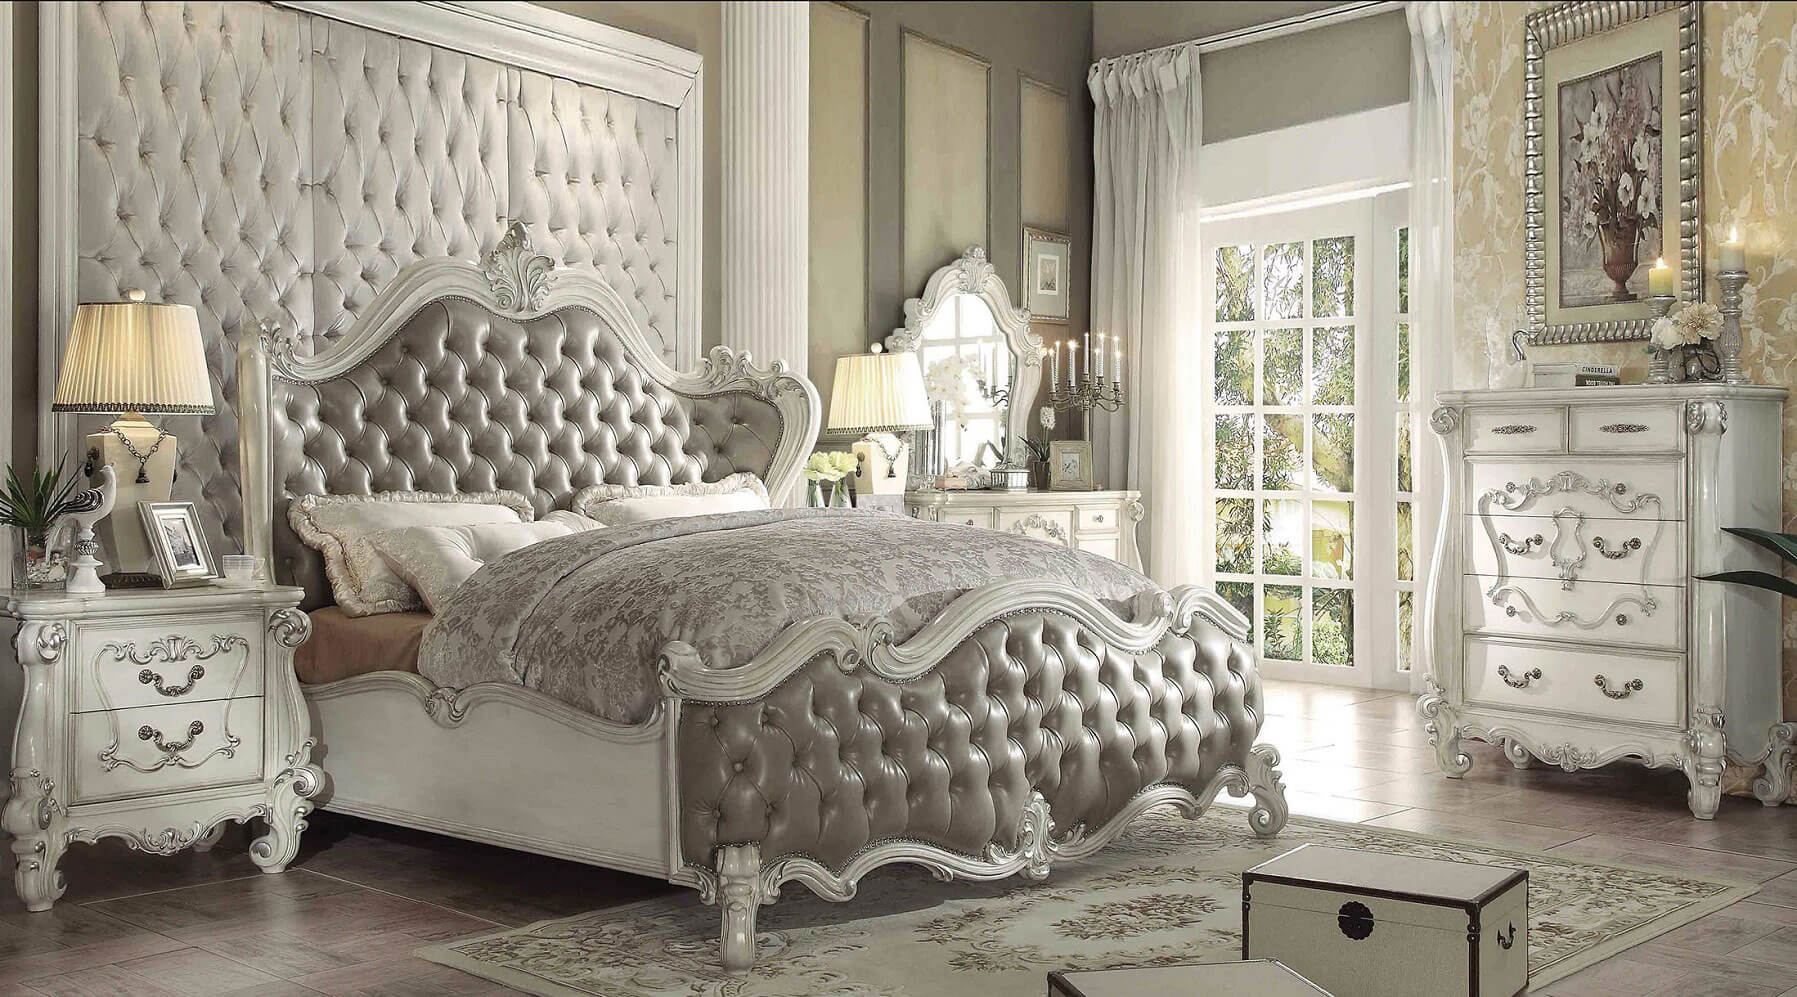 Acme Versailles Upholstered Bedroom Set In Vintage Gray Pu And Bone White 1stopbedrooms